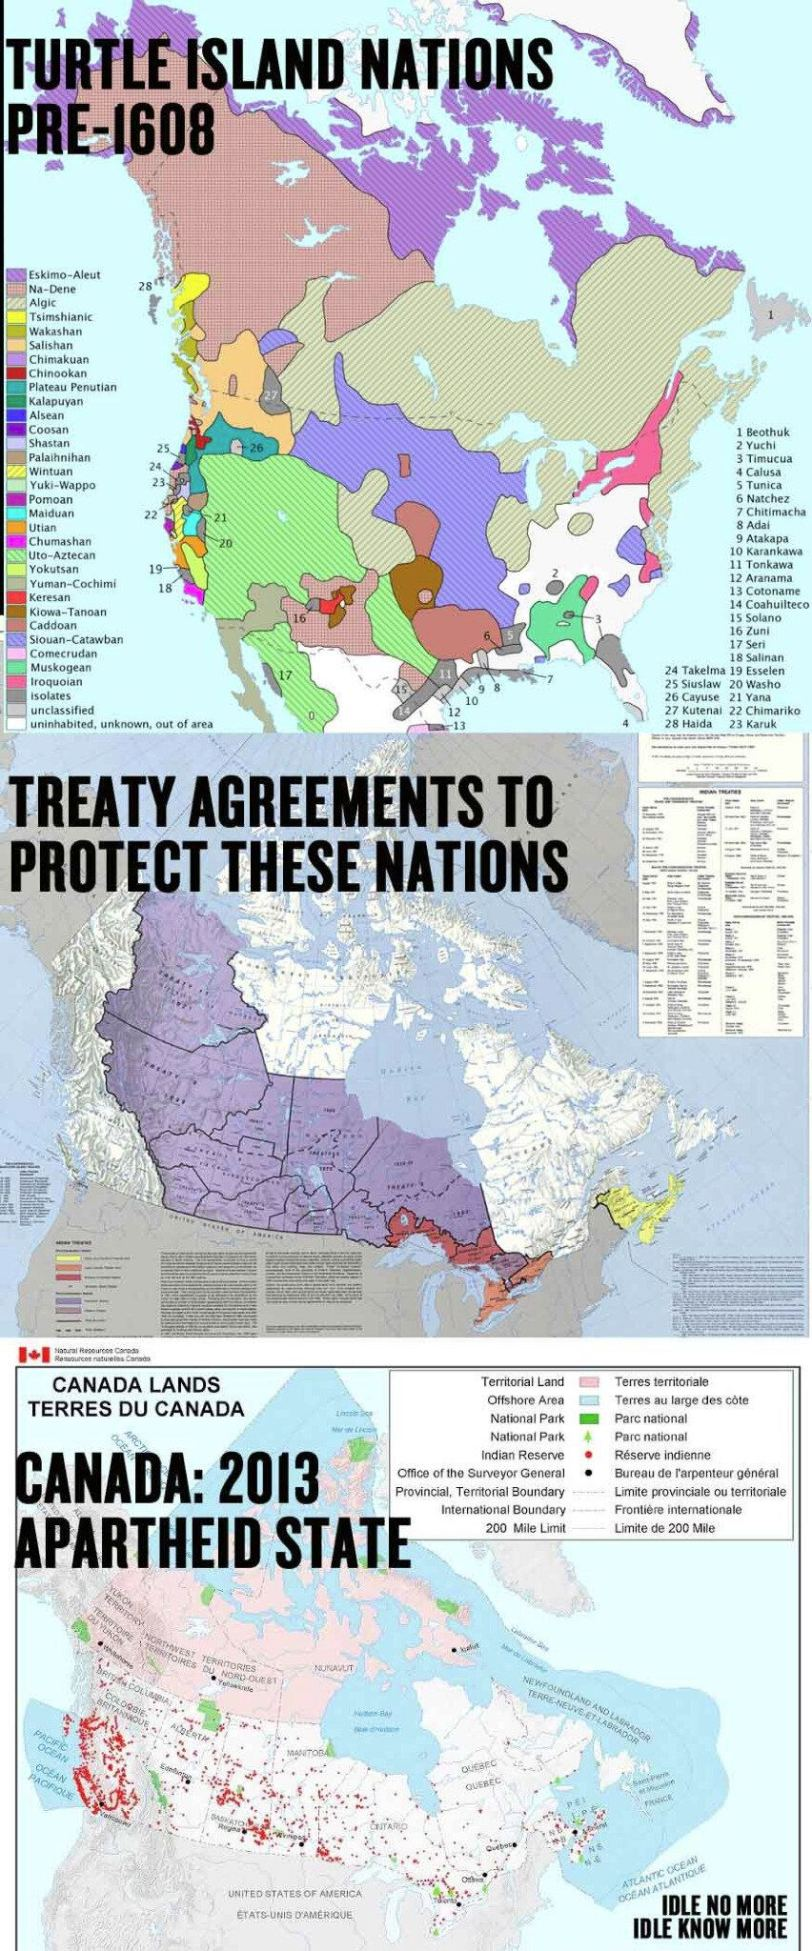 TURTLE ISLAND NATIONS FOREVER! - #IDLENOMORE